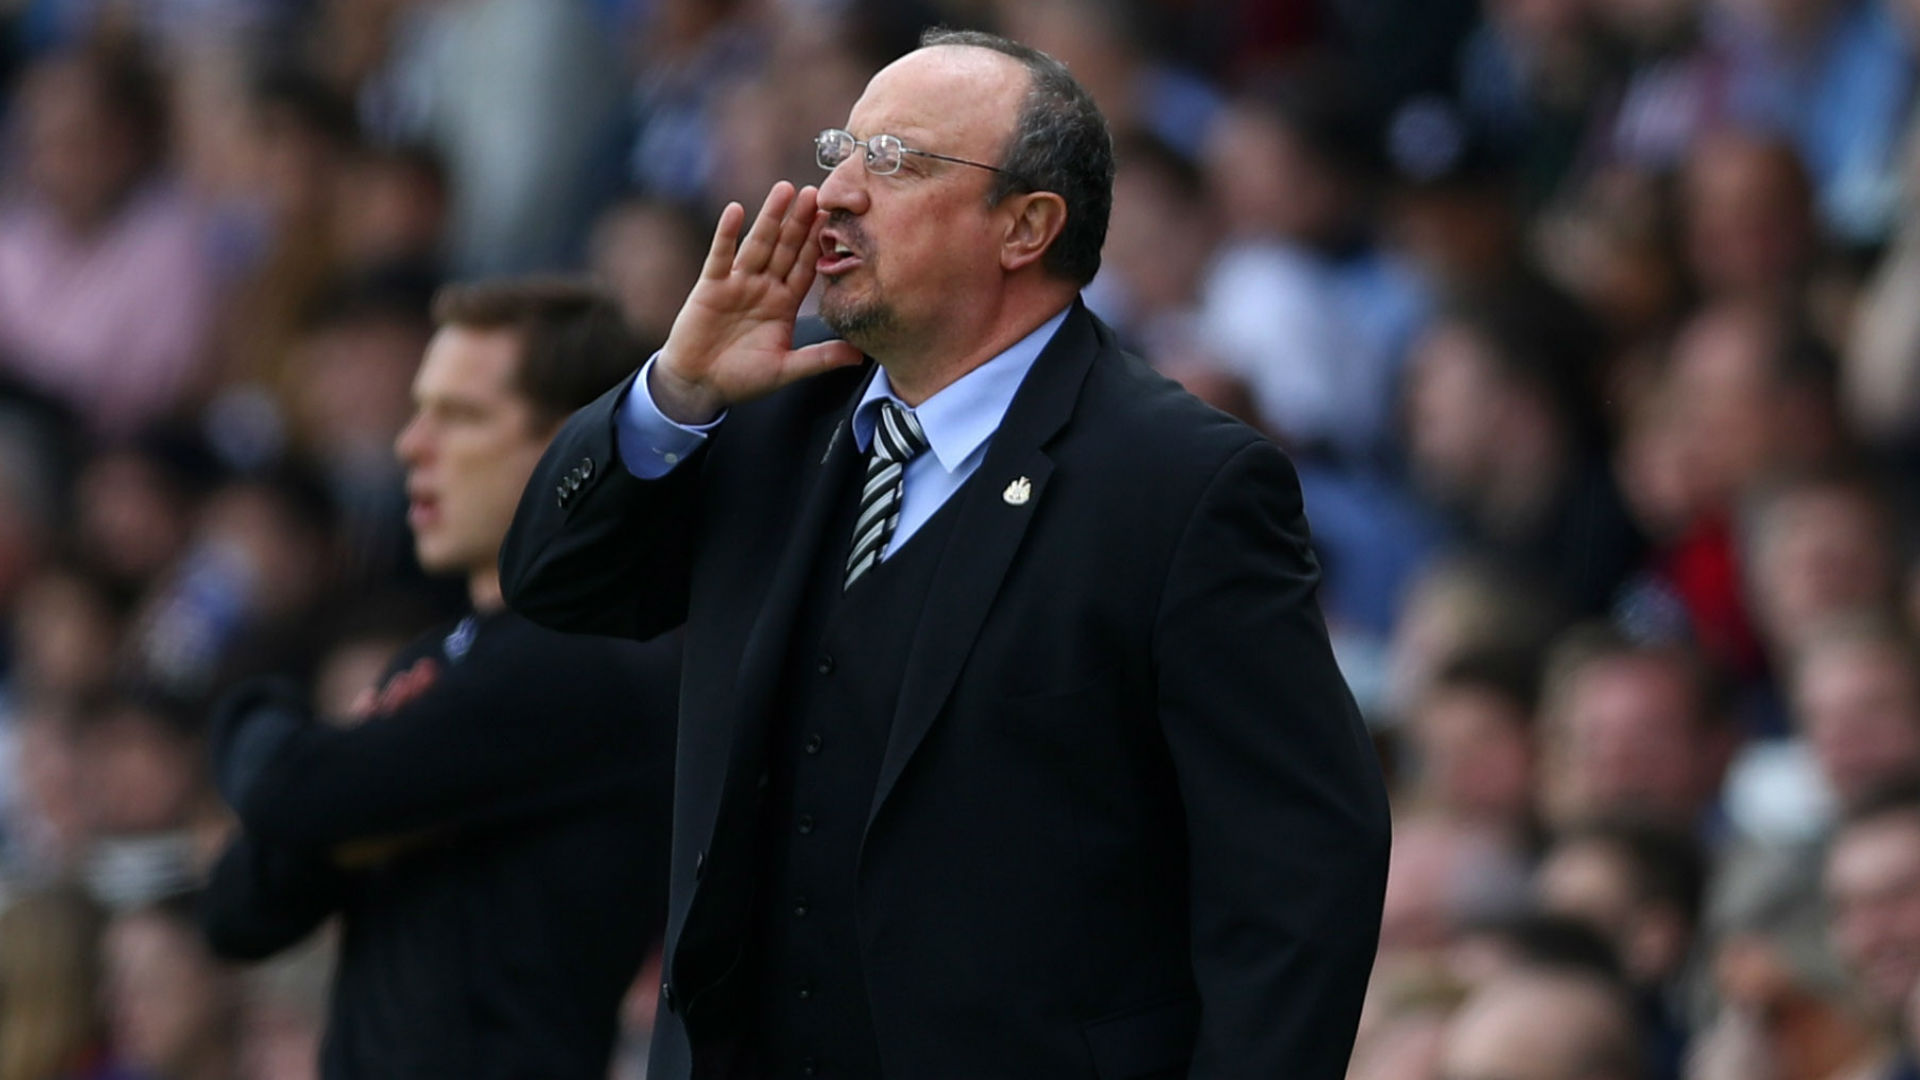 Benitez still non-committal on Newcastle future ahead of Ashley talks